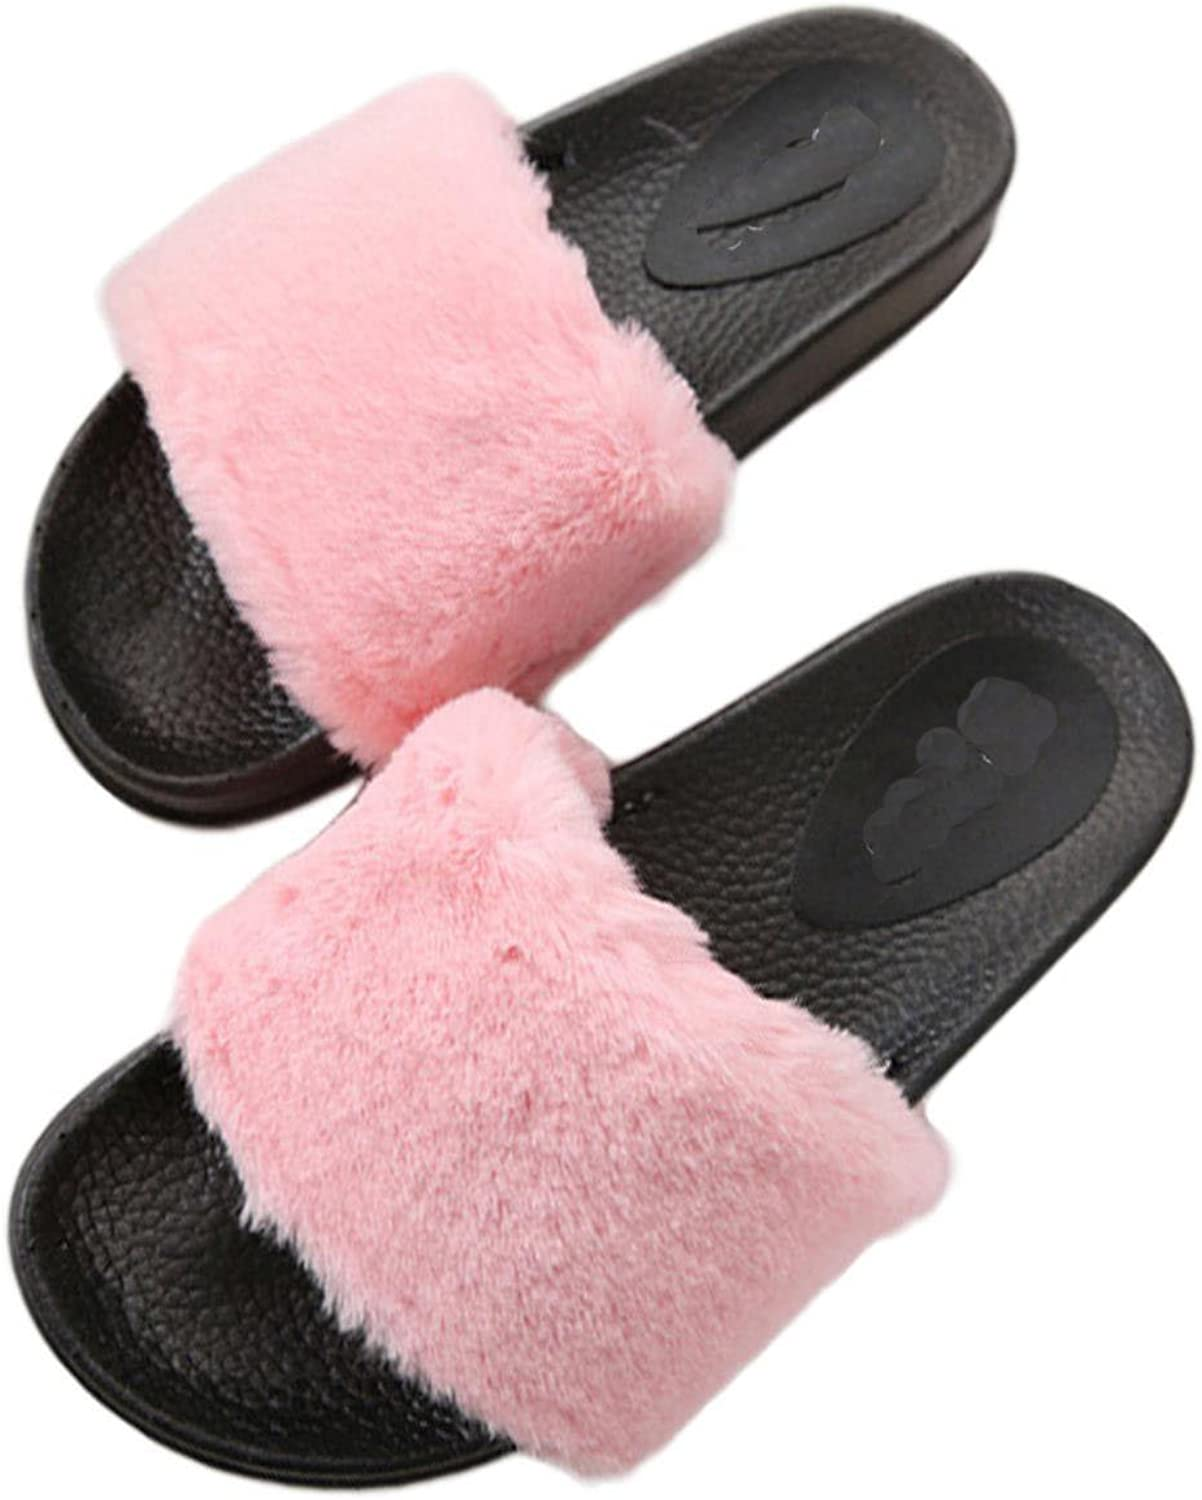 Women Plush Slippers Fluffy Rubber Thicker Non-slip Cute Furry Fur Slides Ladies Large Size shoes